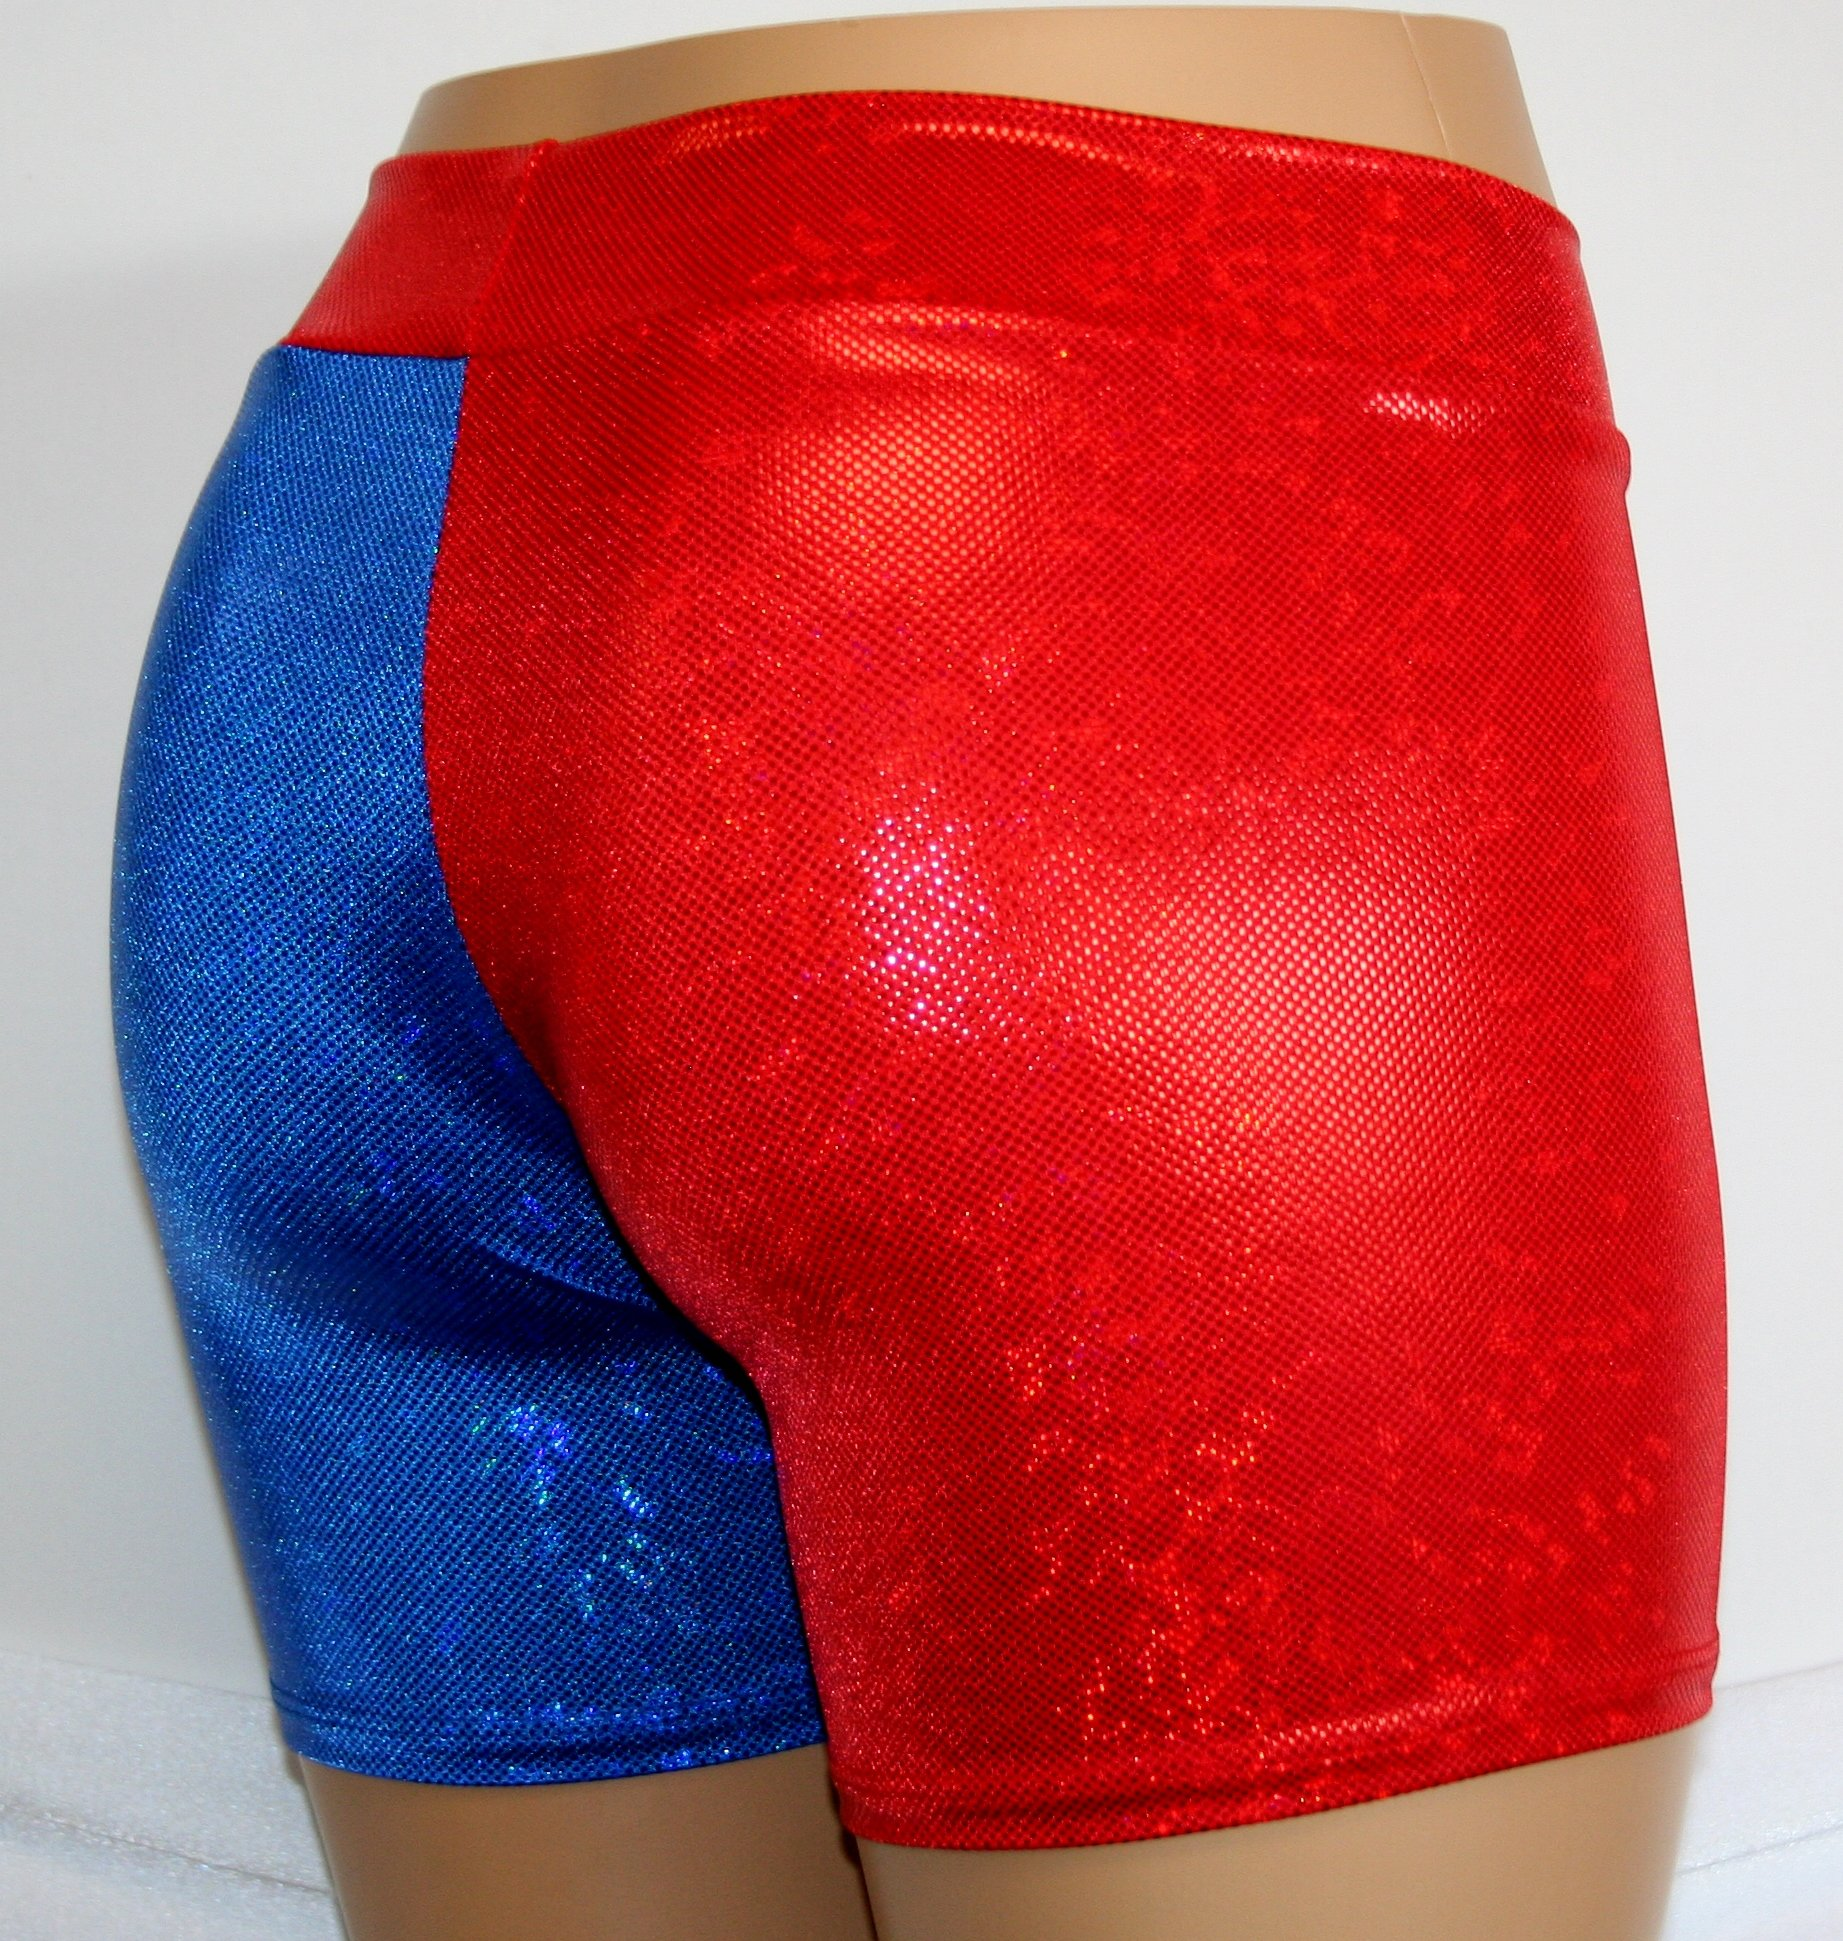 Dilly Duds Children's Red and Blue Holographic Spandex Shorts (X-Small, Red Blue) by Dilly Duds (Image #3)